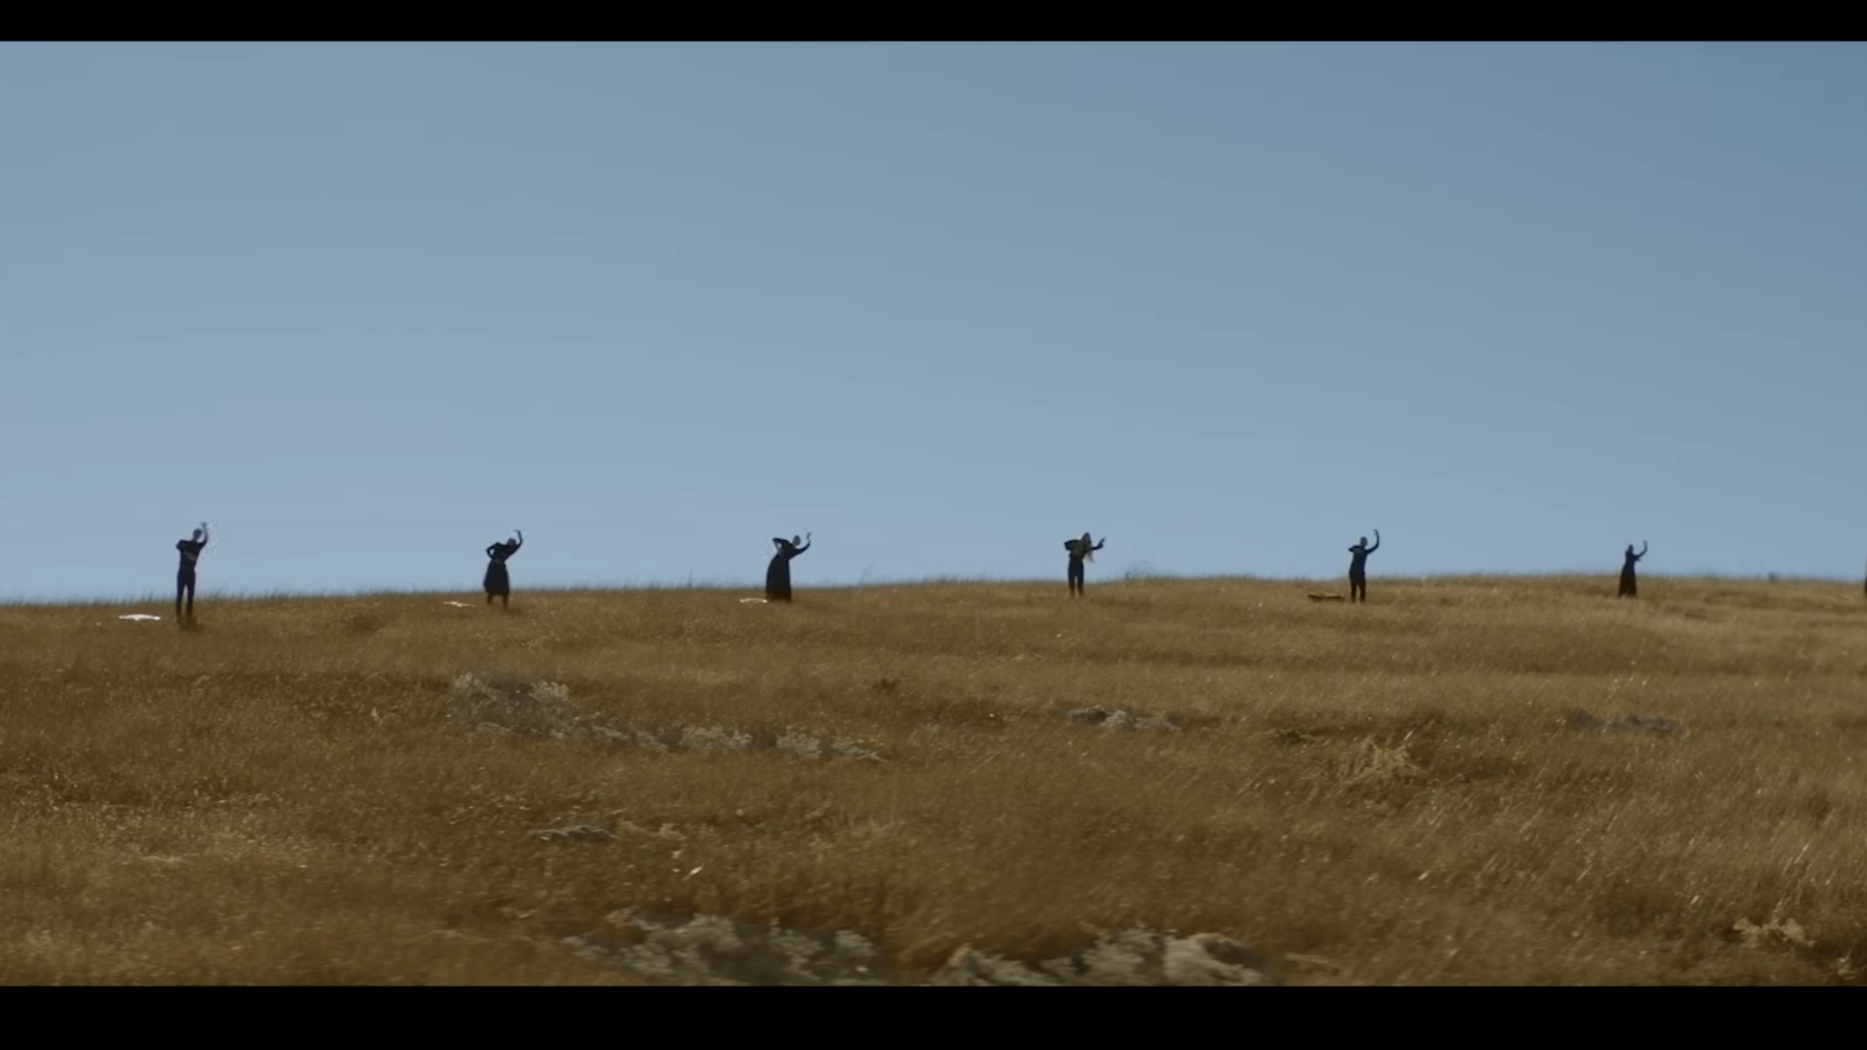 GOING HOME / VANCE JOY - Directed by Mimi Cave